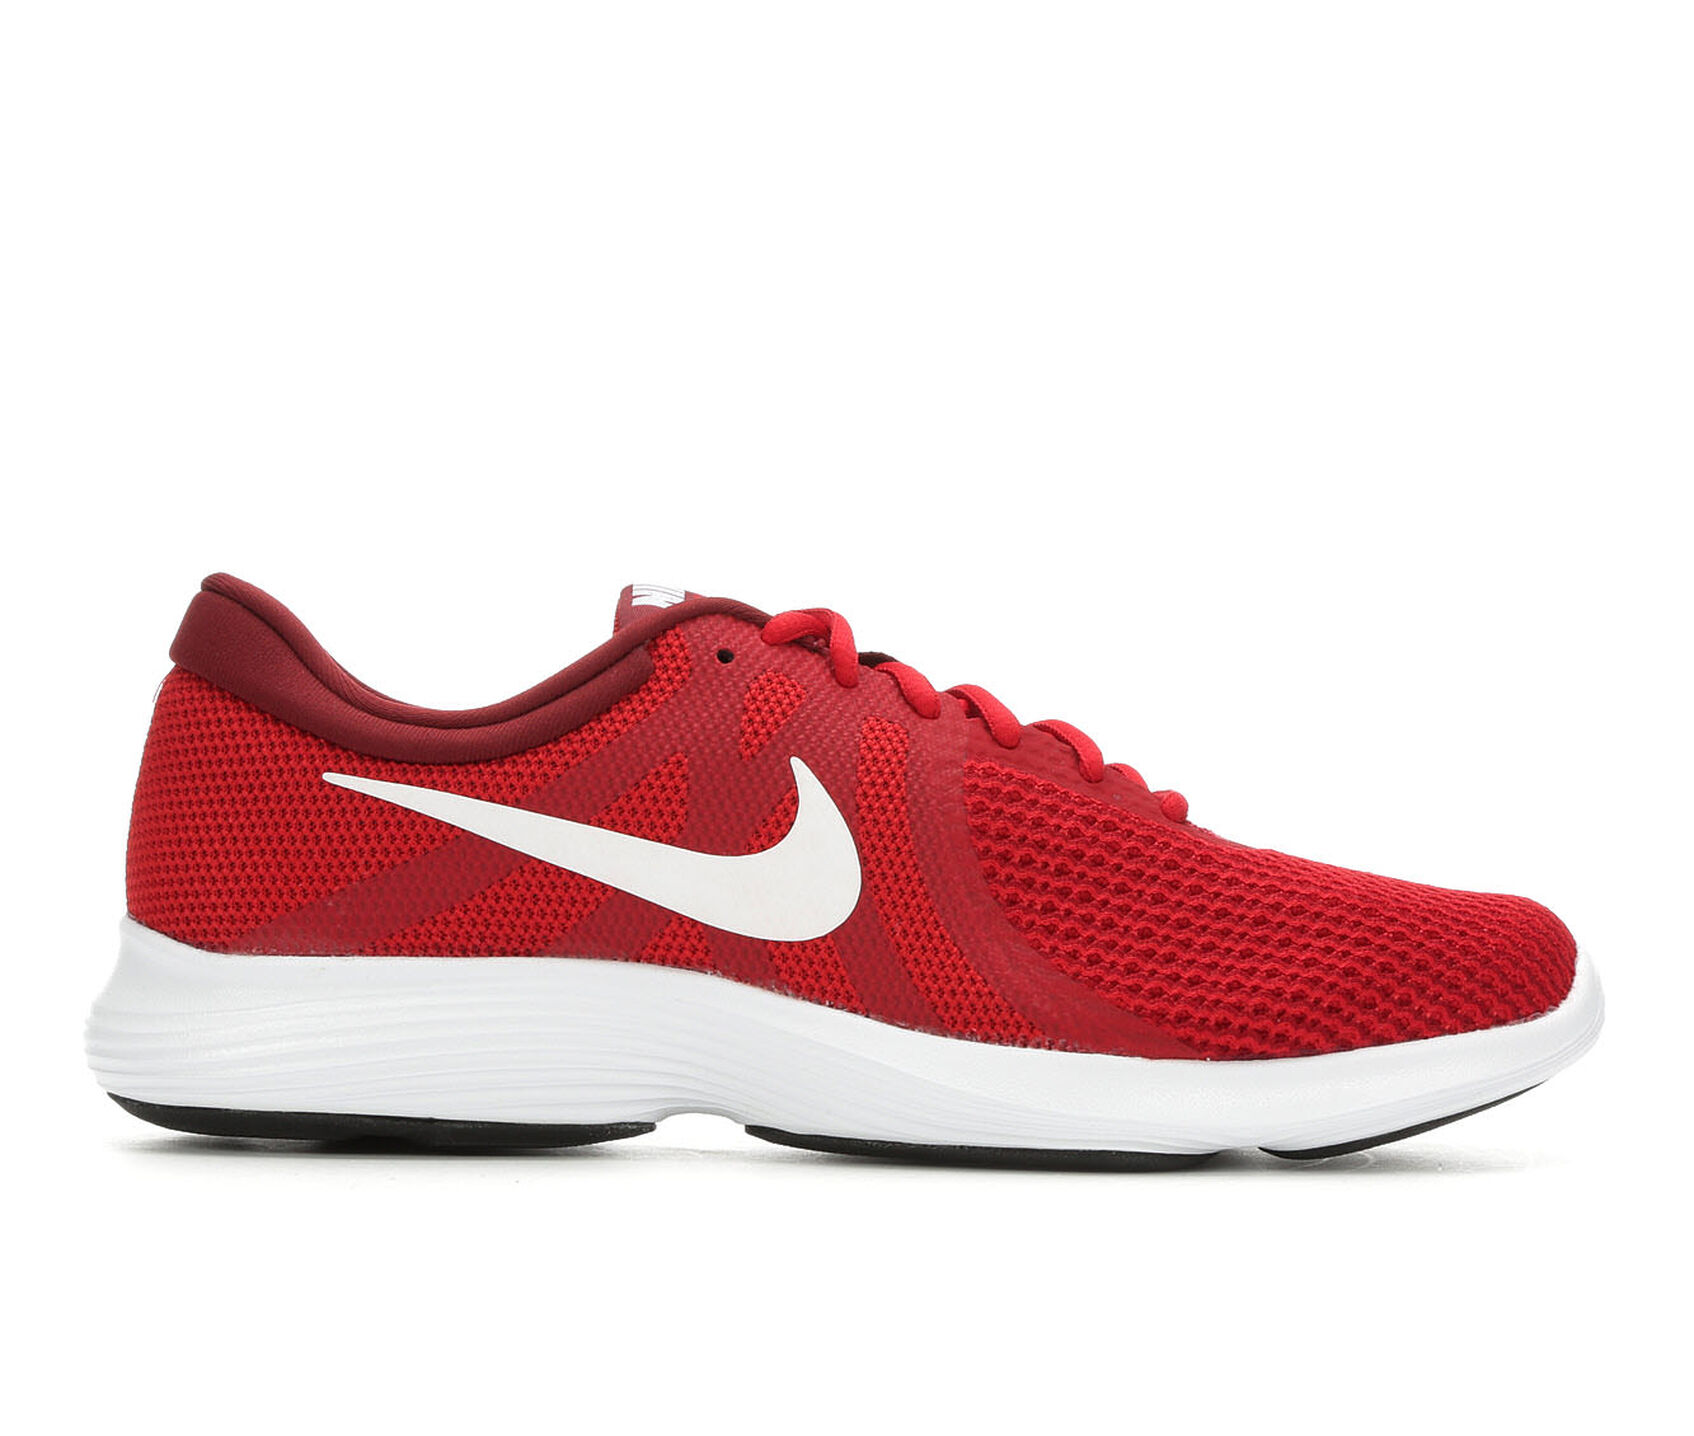 6d9b78f8b511 ... Nike Revolution 4 Running Shoes. Previous